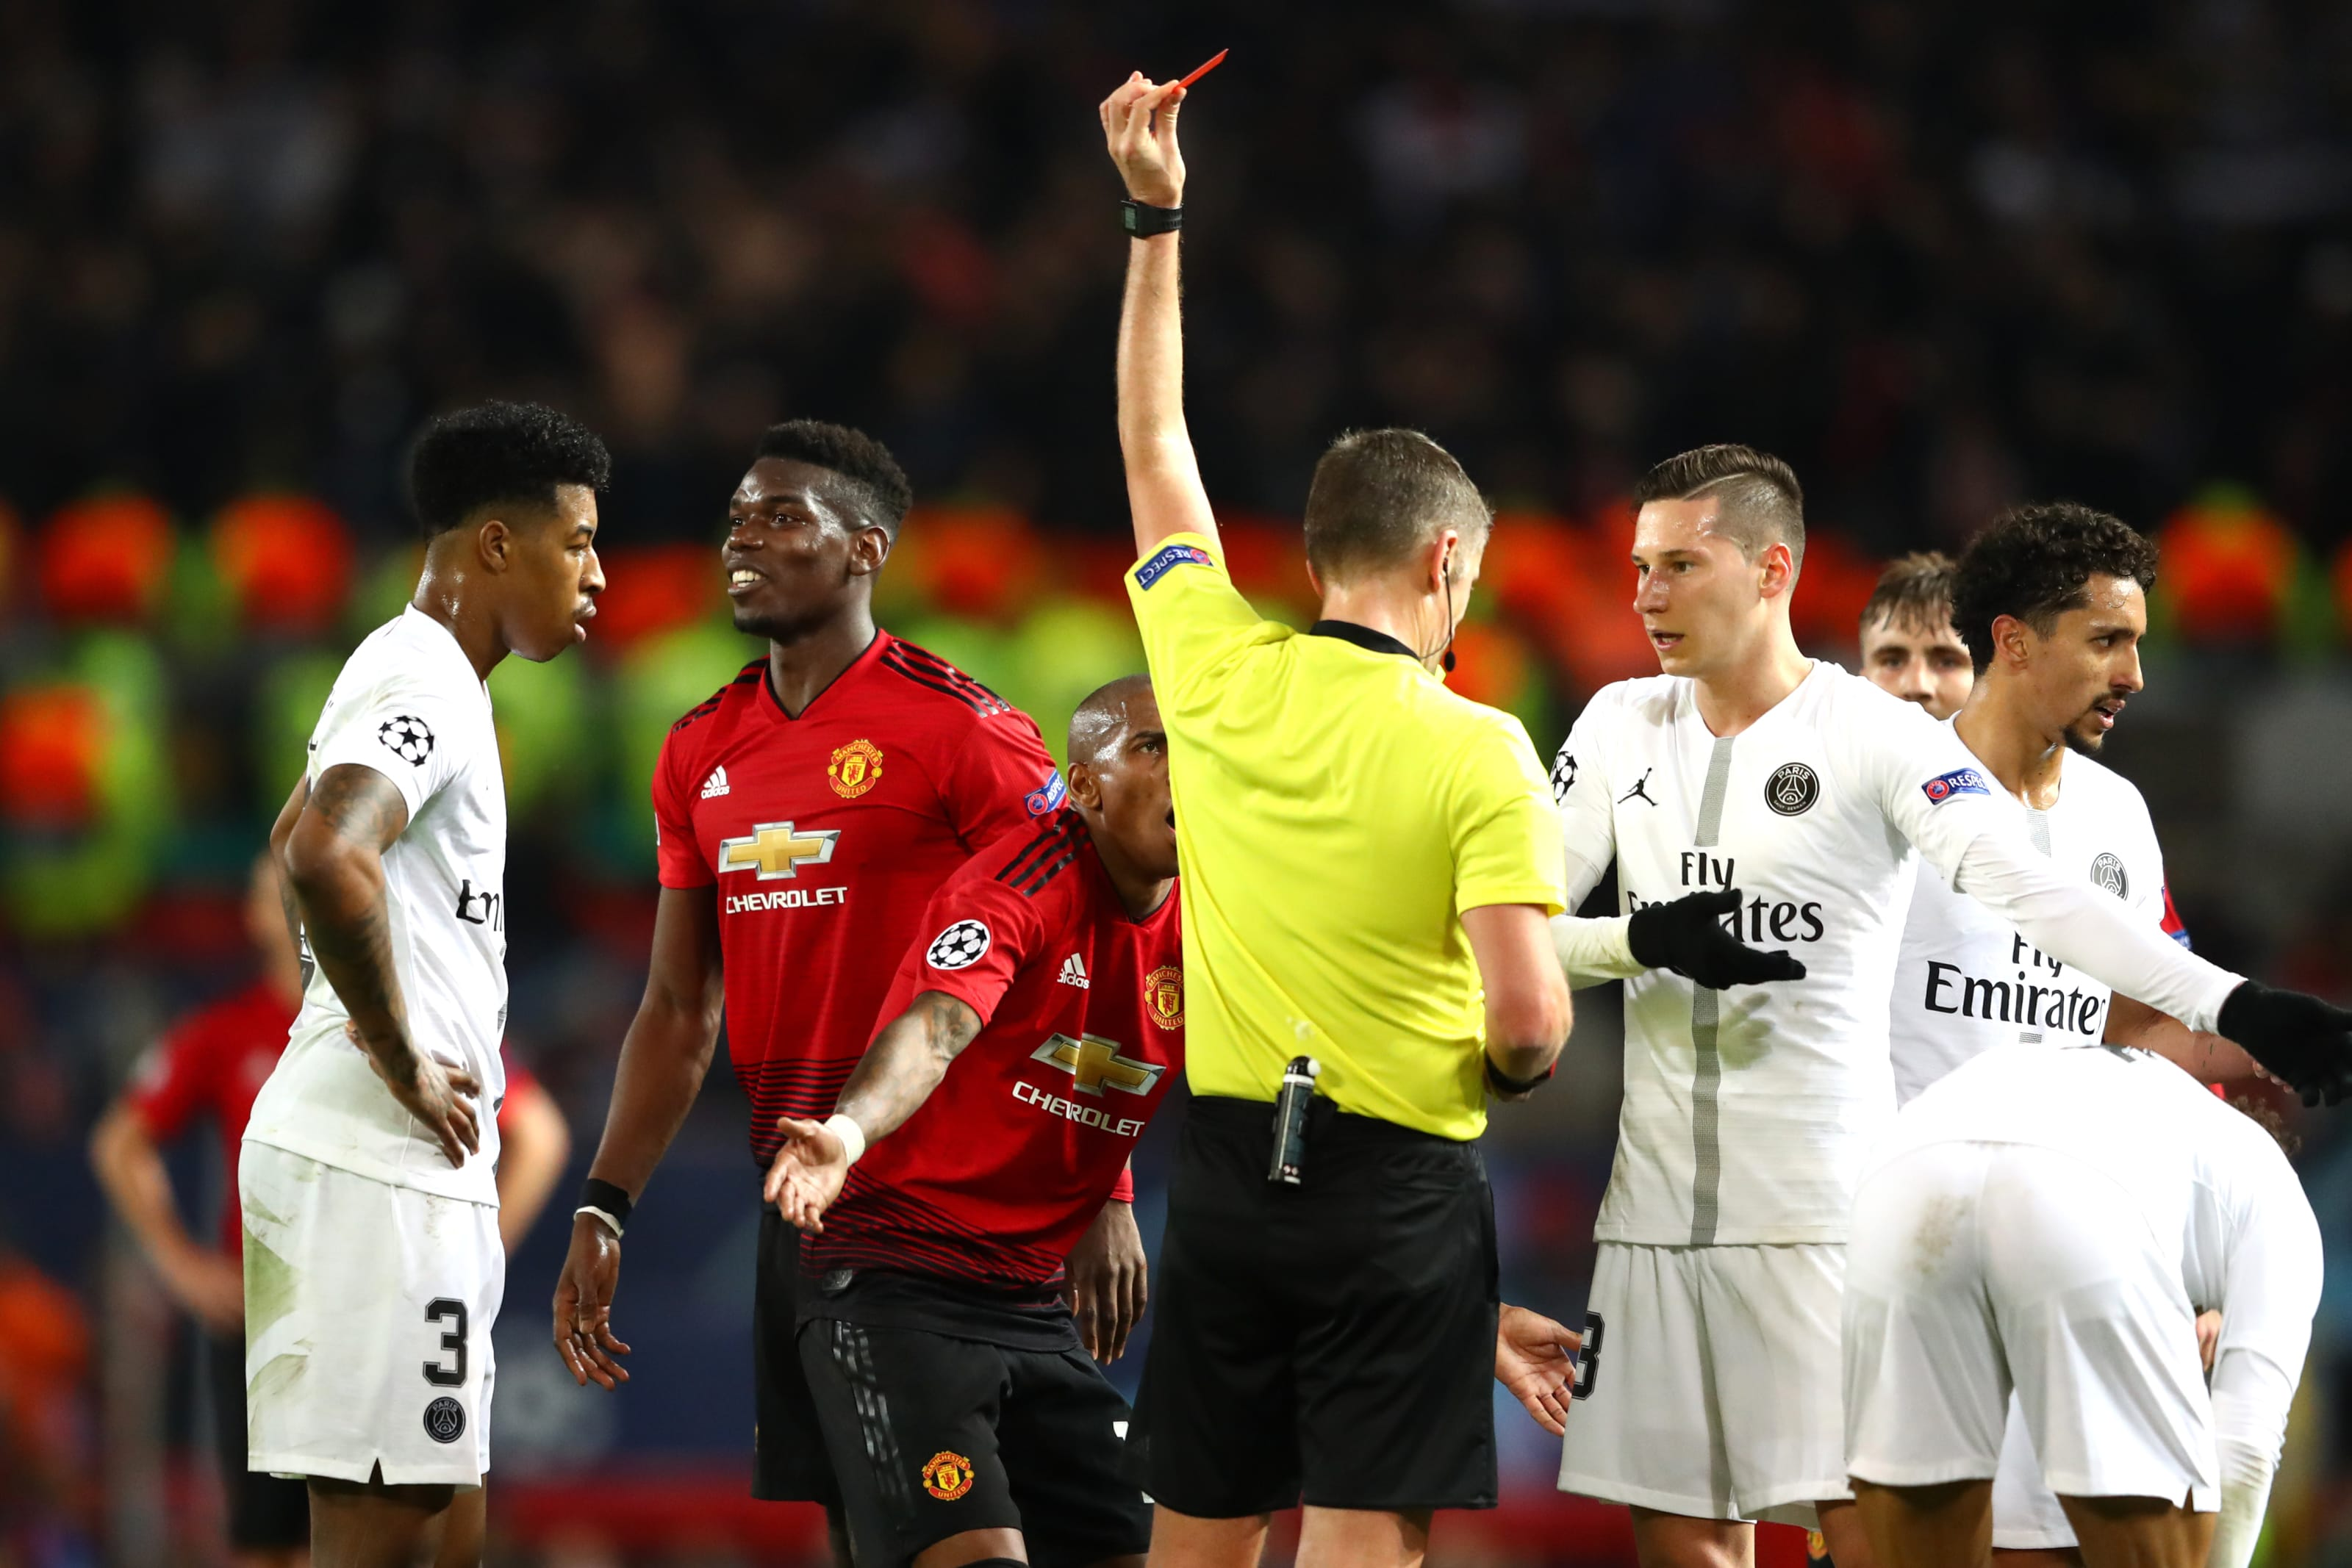 Manchester United 0 2 Psg Player Ratings Analysis And More Page 3